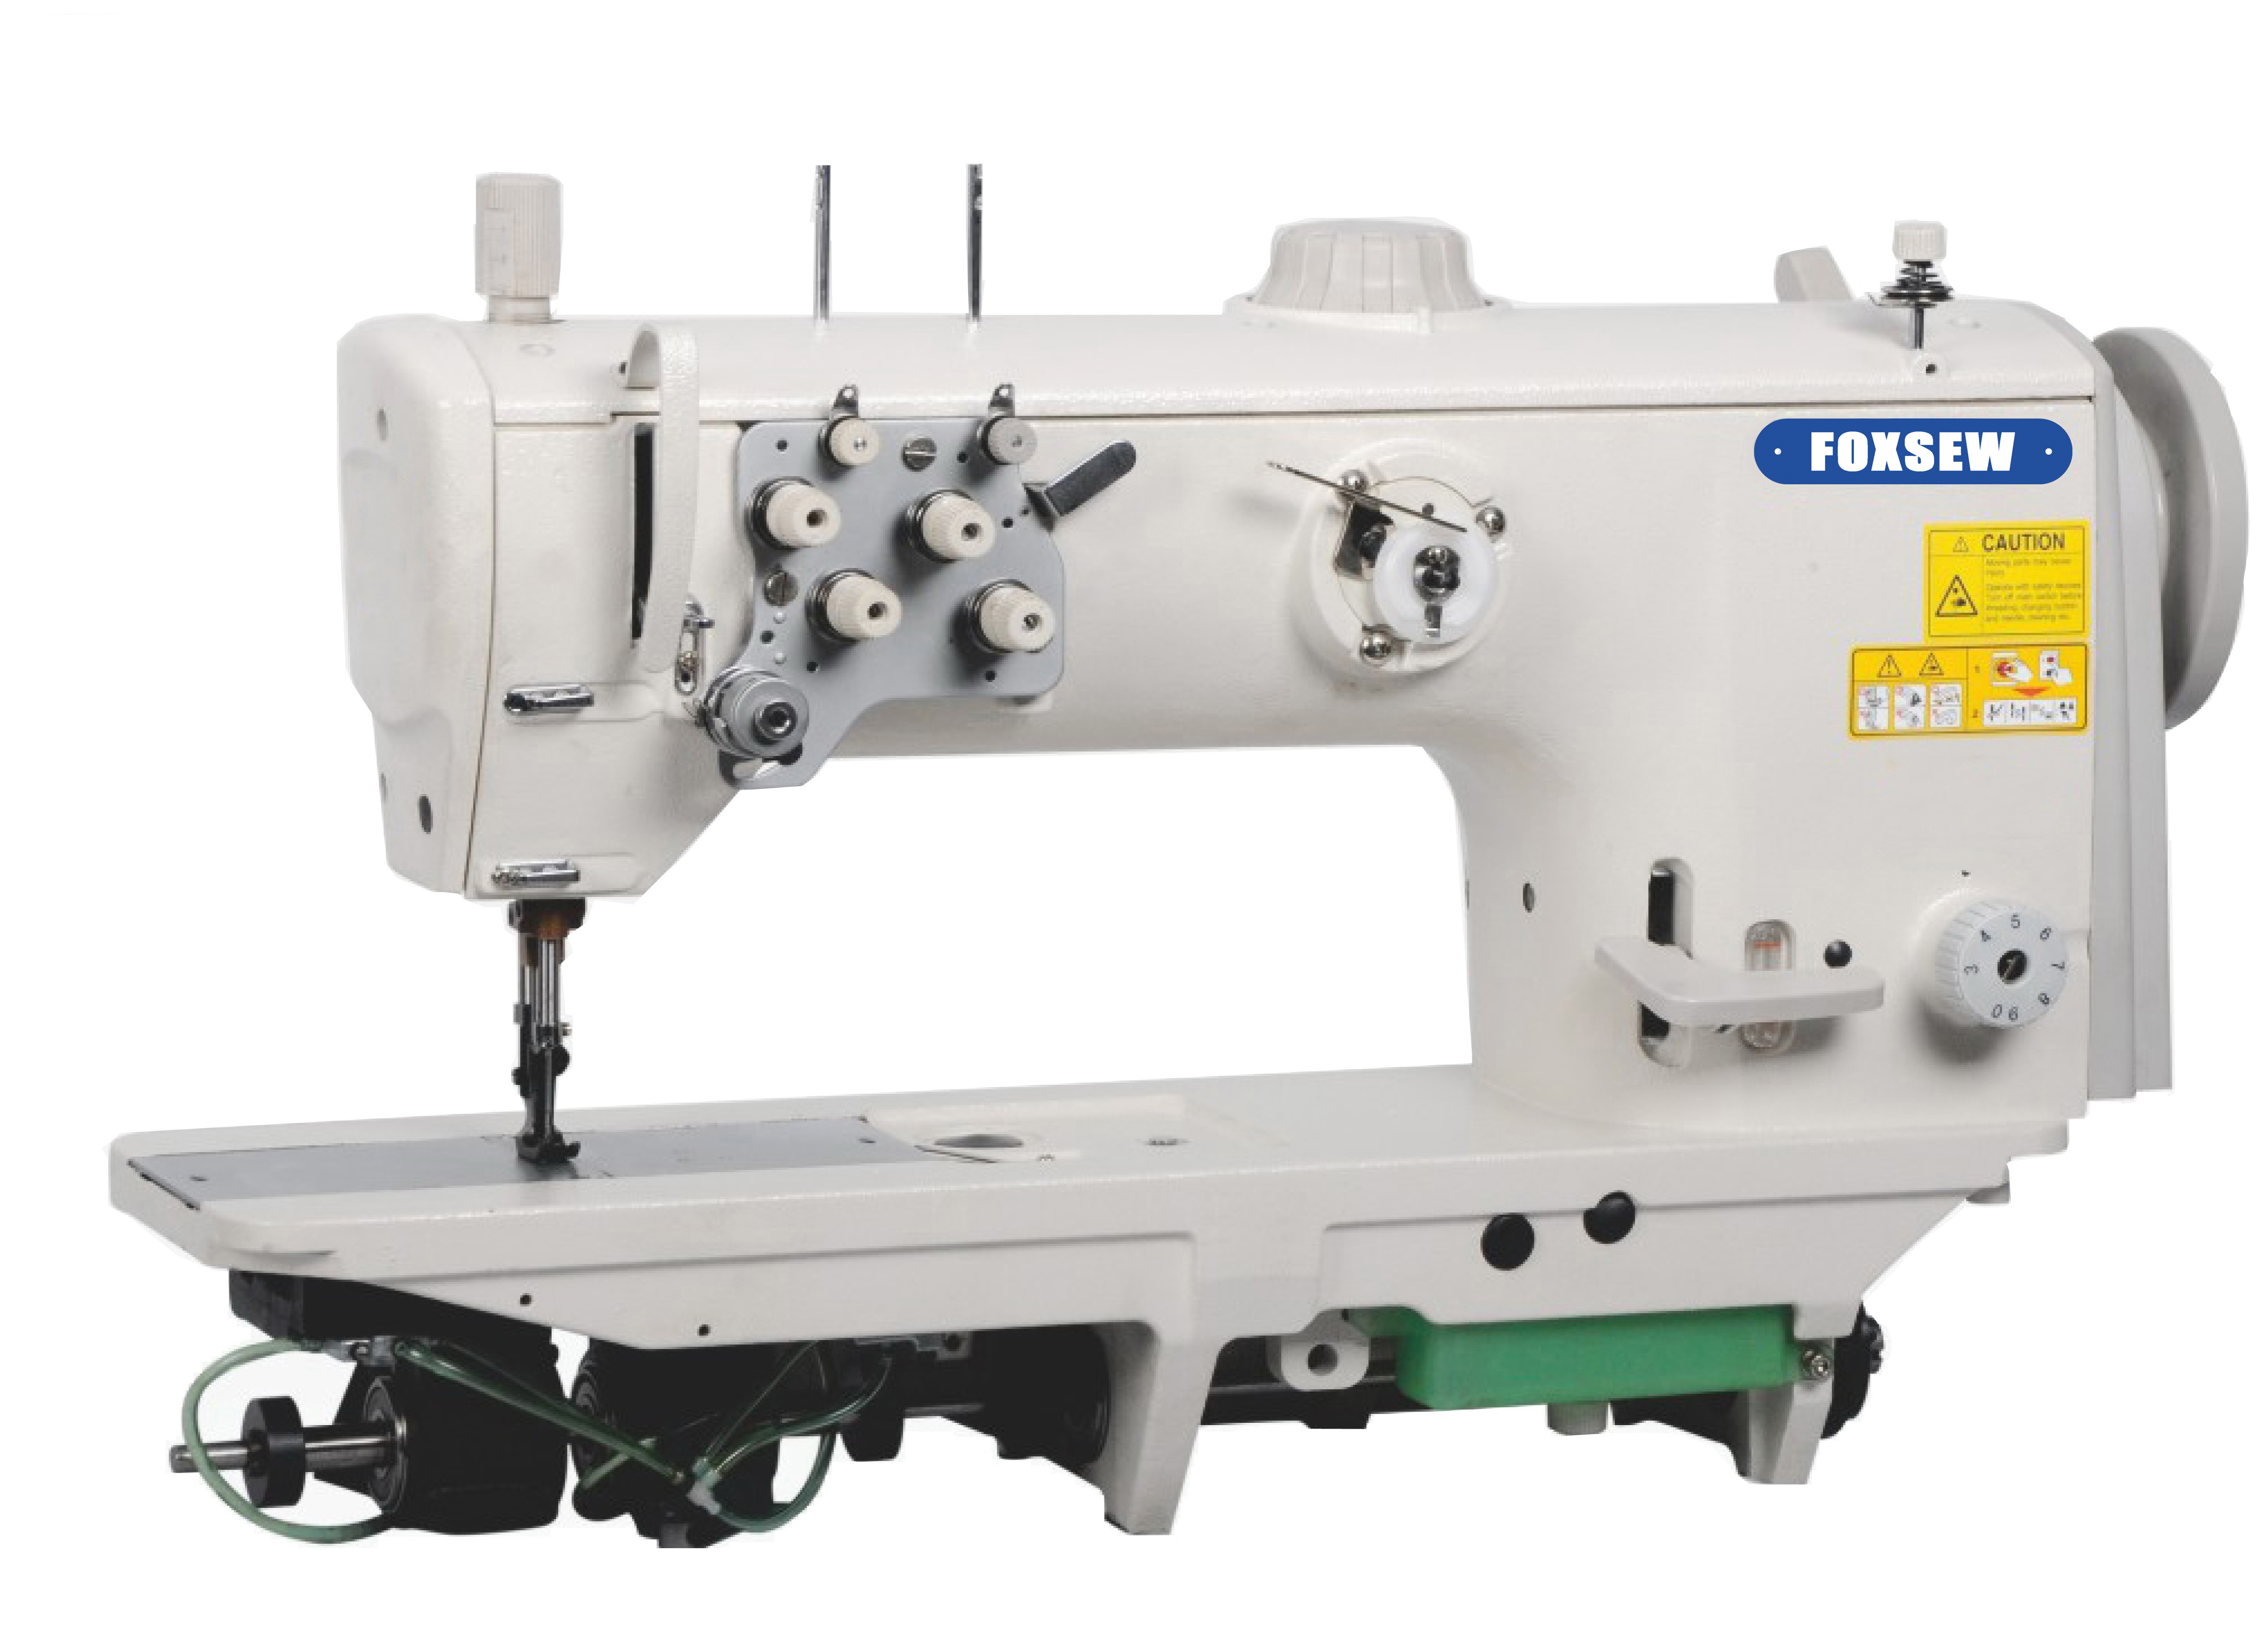 KD-2810 Single Needle Compound Feed Heavy Duty Lockstitch Sewing Machine